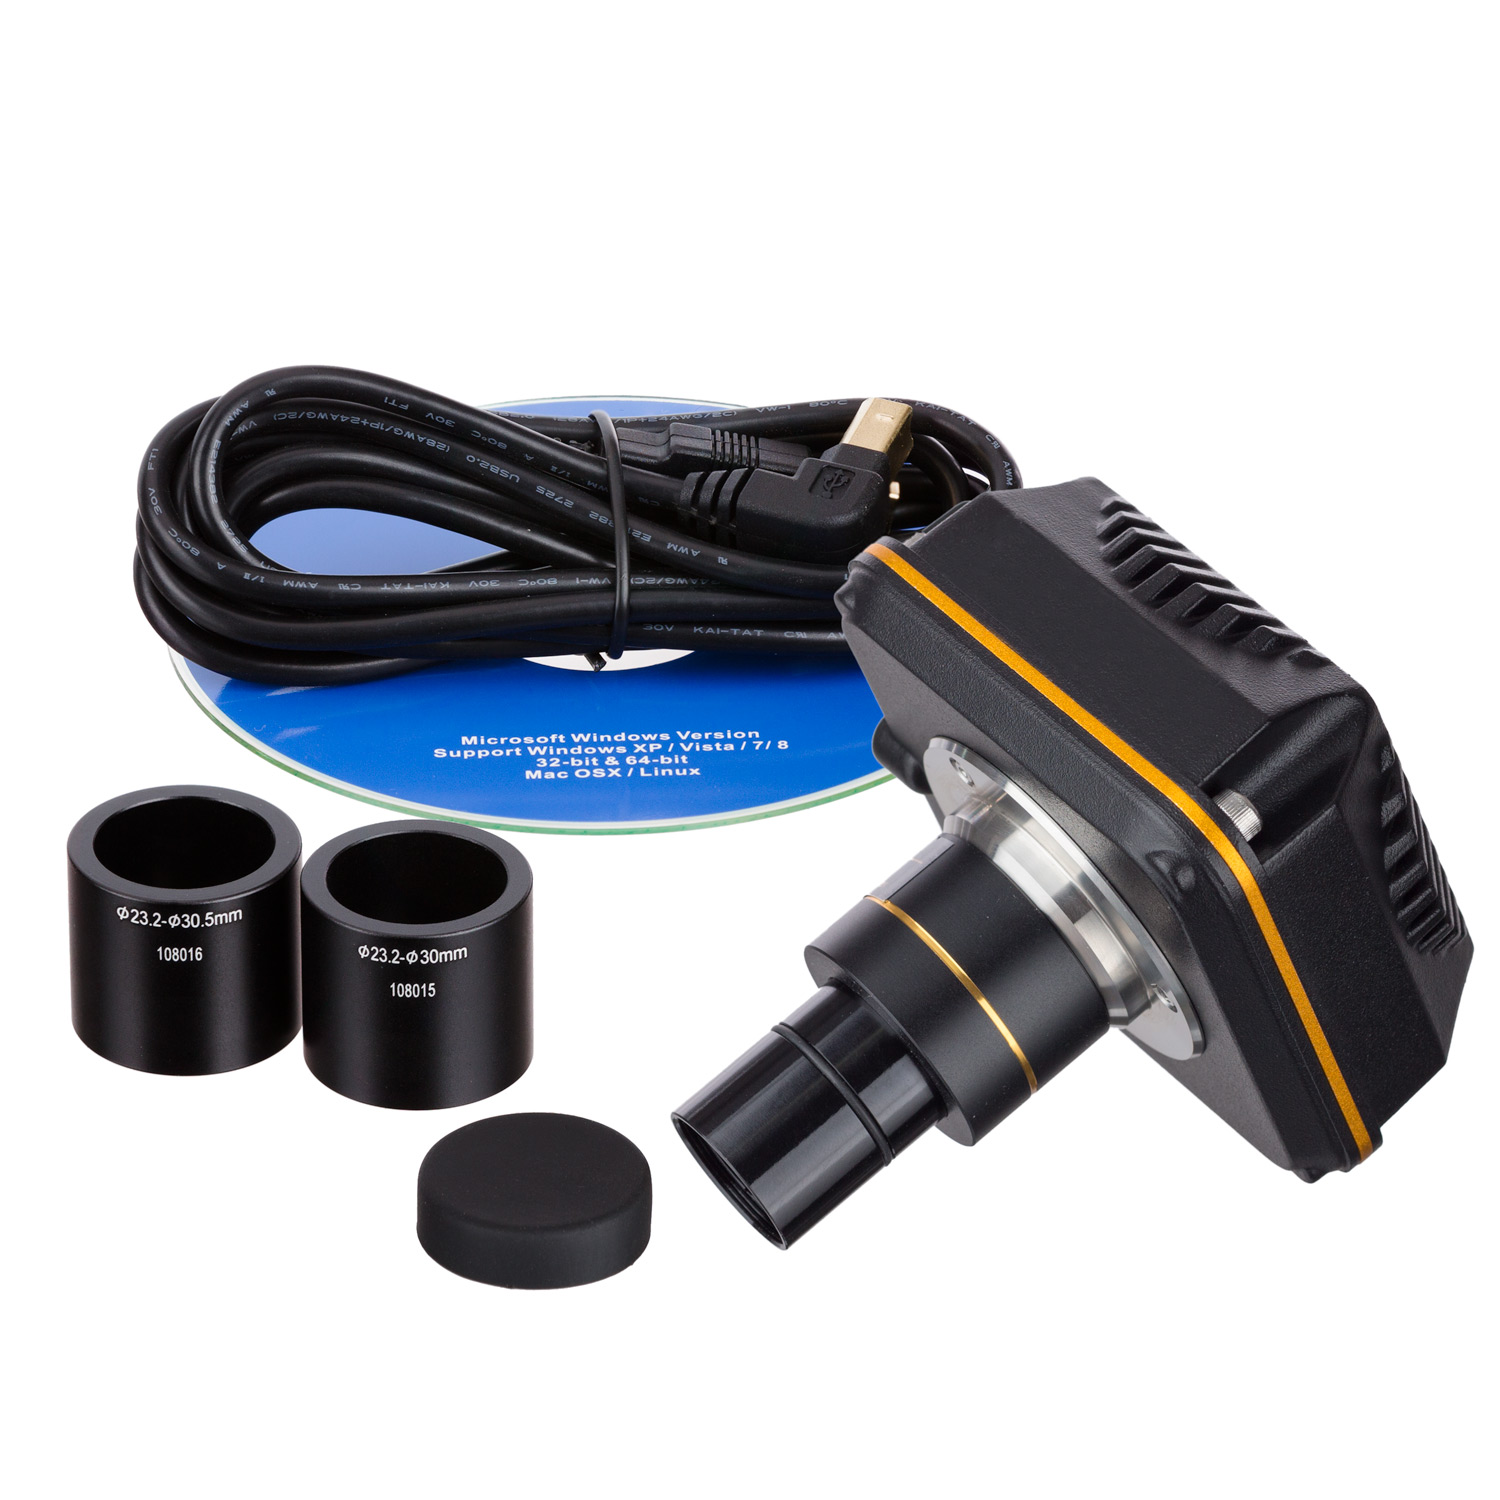 AmScope 14MP High-Speed USB 3.0 Digital Camera